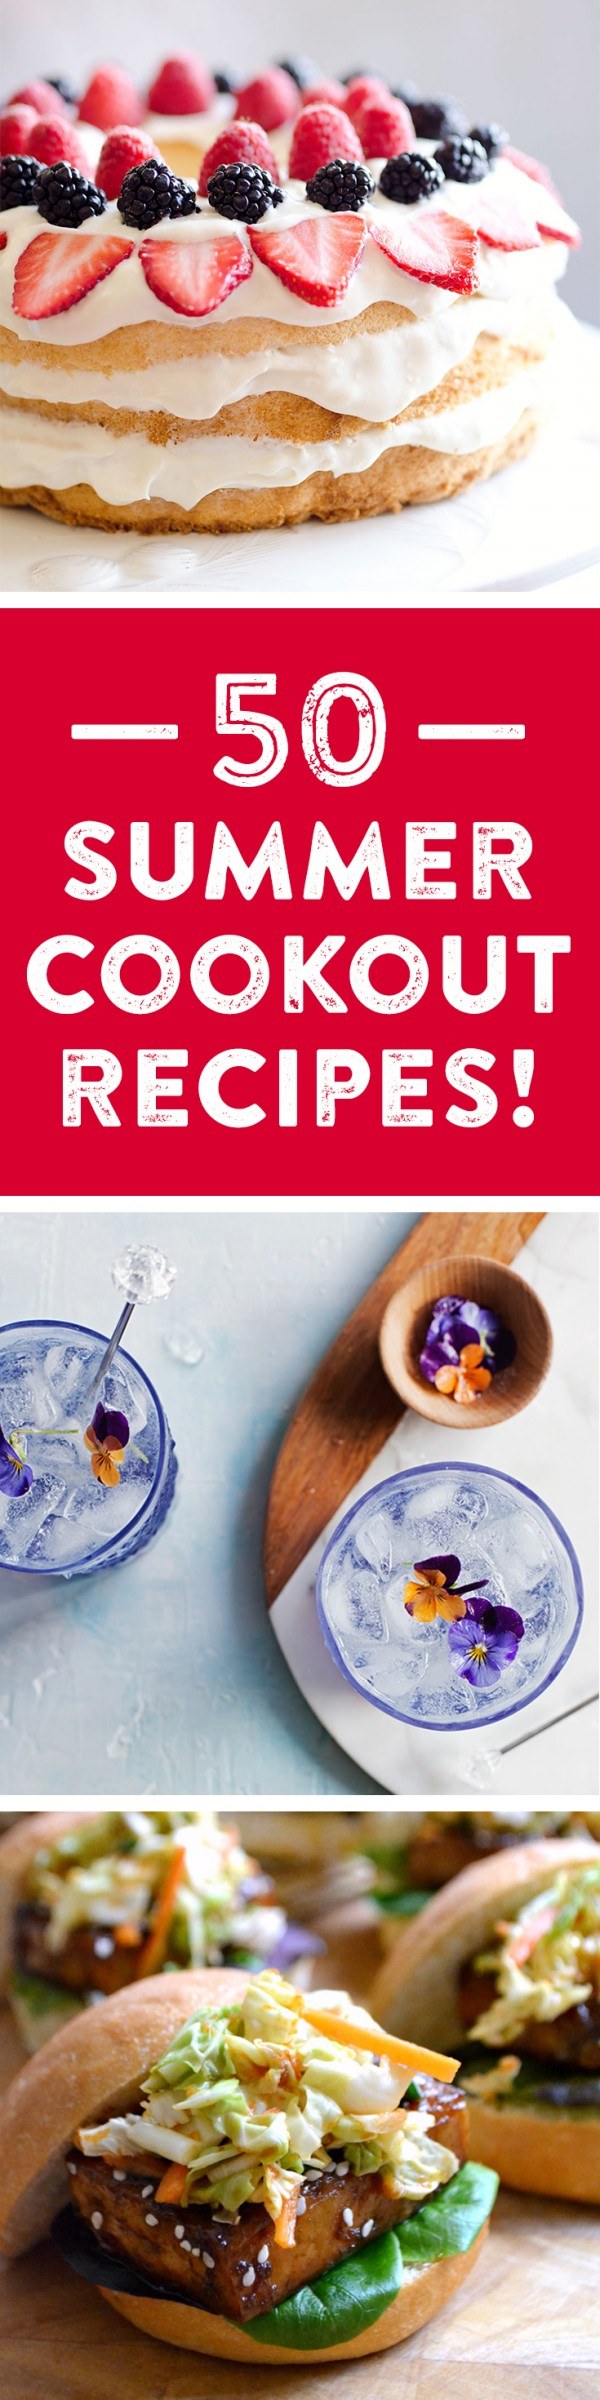 50 recipes for the perfect summer get-together! Whether you're planning a barbecue, picnic, or outdoor party, check out everything from appetizer recipes, entree recipes, cocktail recipes, dessert recipes, side dish recipes and more to go with your BBQ!